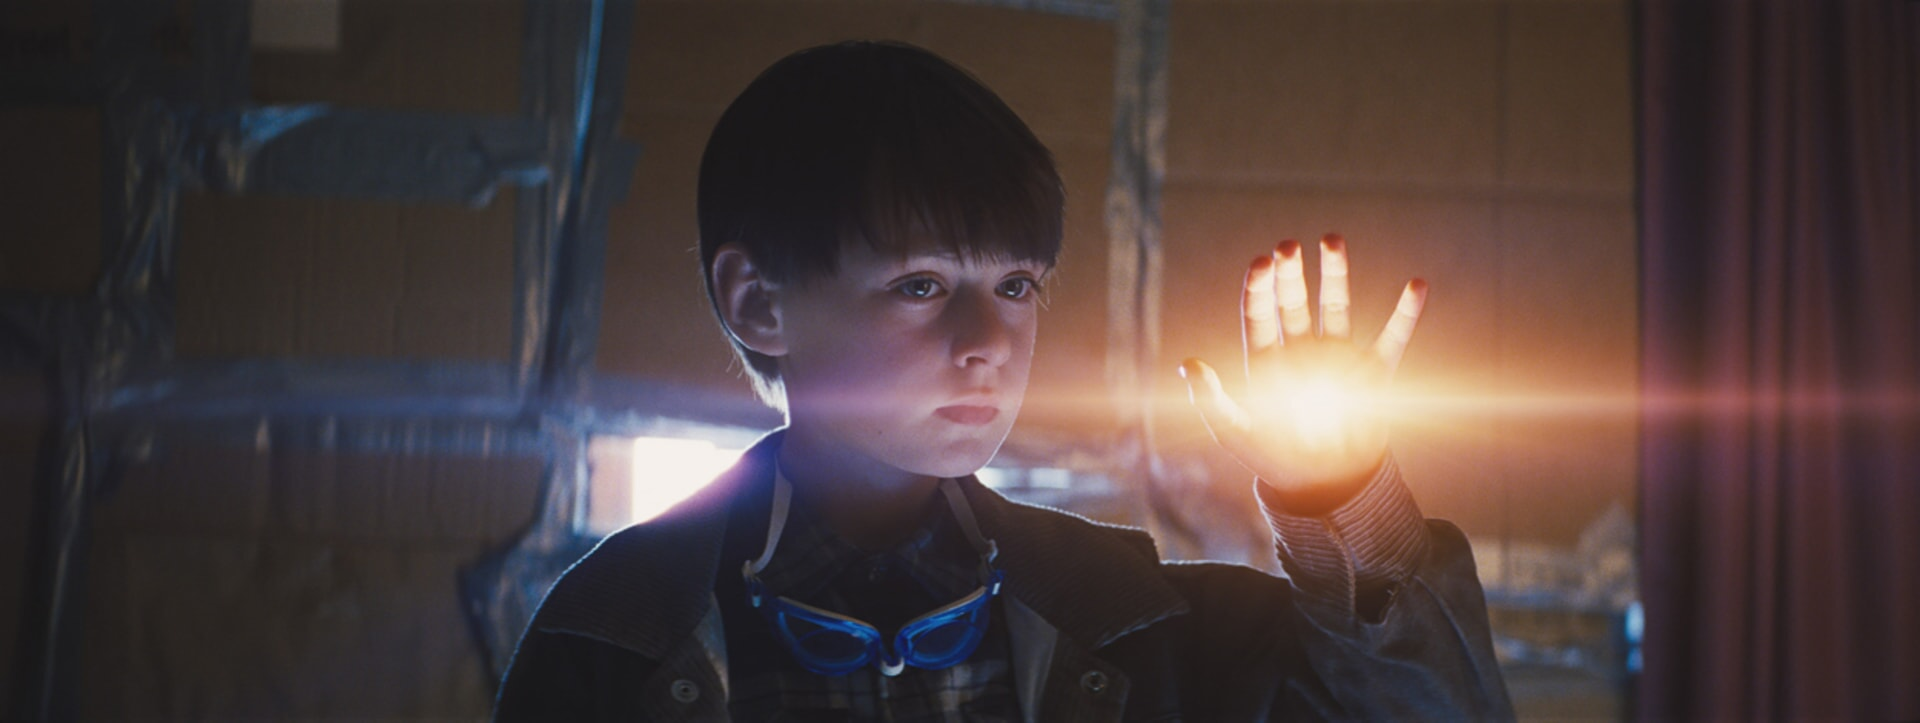 "JAEDEN LIEBERHER as Alton in director Jeff Nichols' sci-fi thriller ""MIDNIGHT SPECIAL,"""